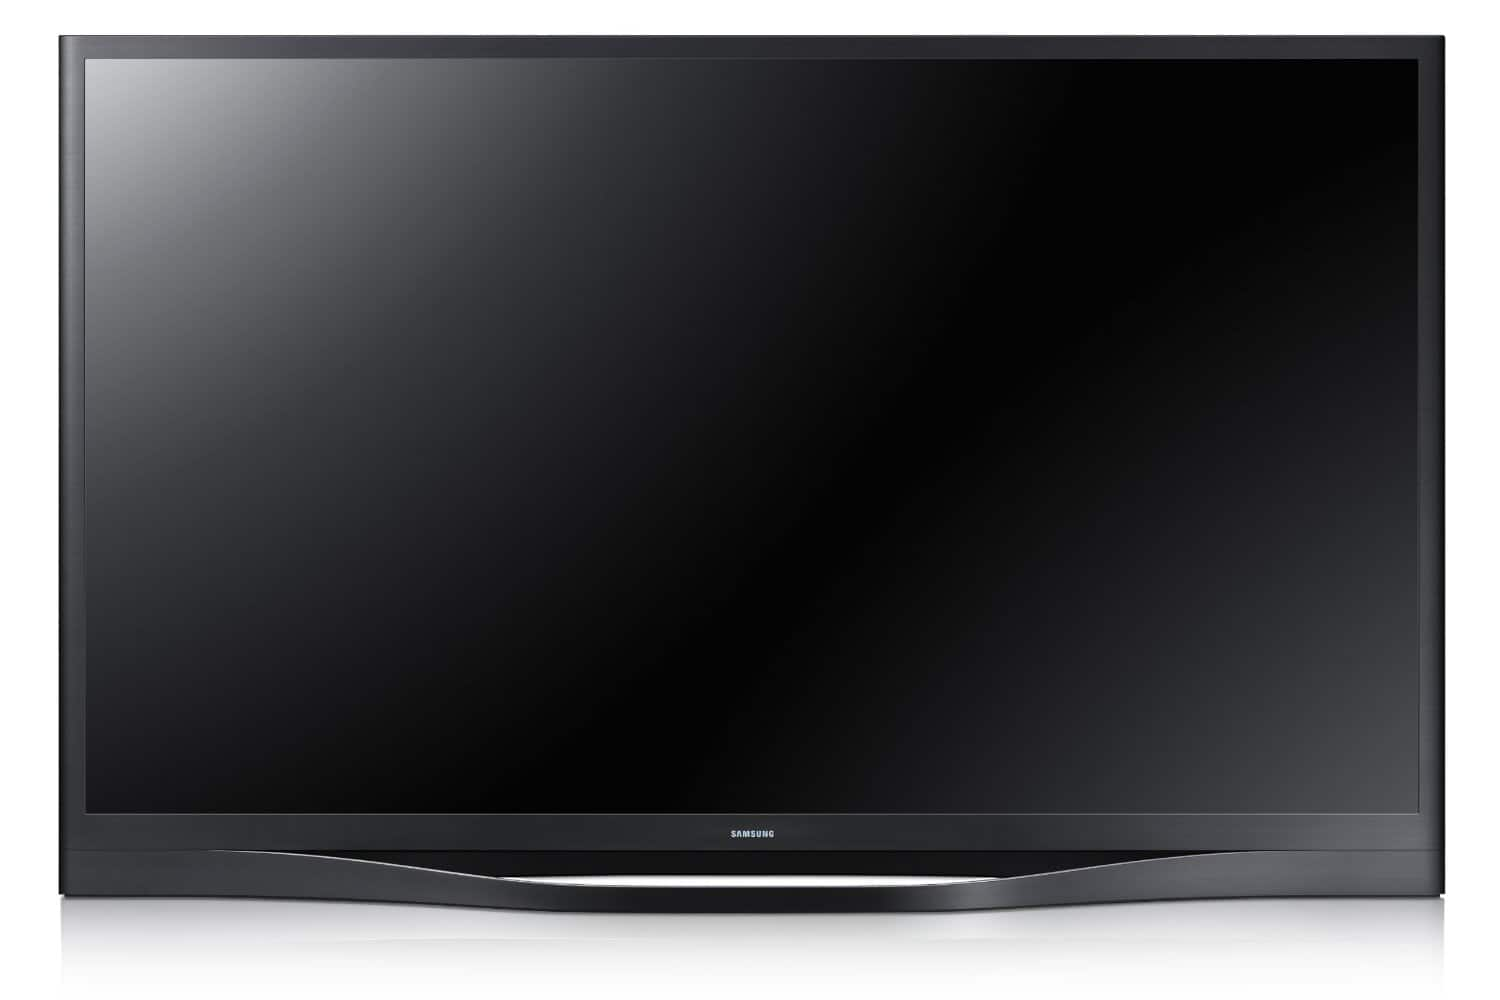 Samsung PN64F8500 64-Inch 1080p 600Hz 3D Smart Plasma HDTV - $2,497.99 @ Amazon